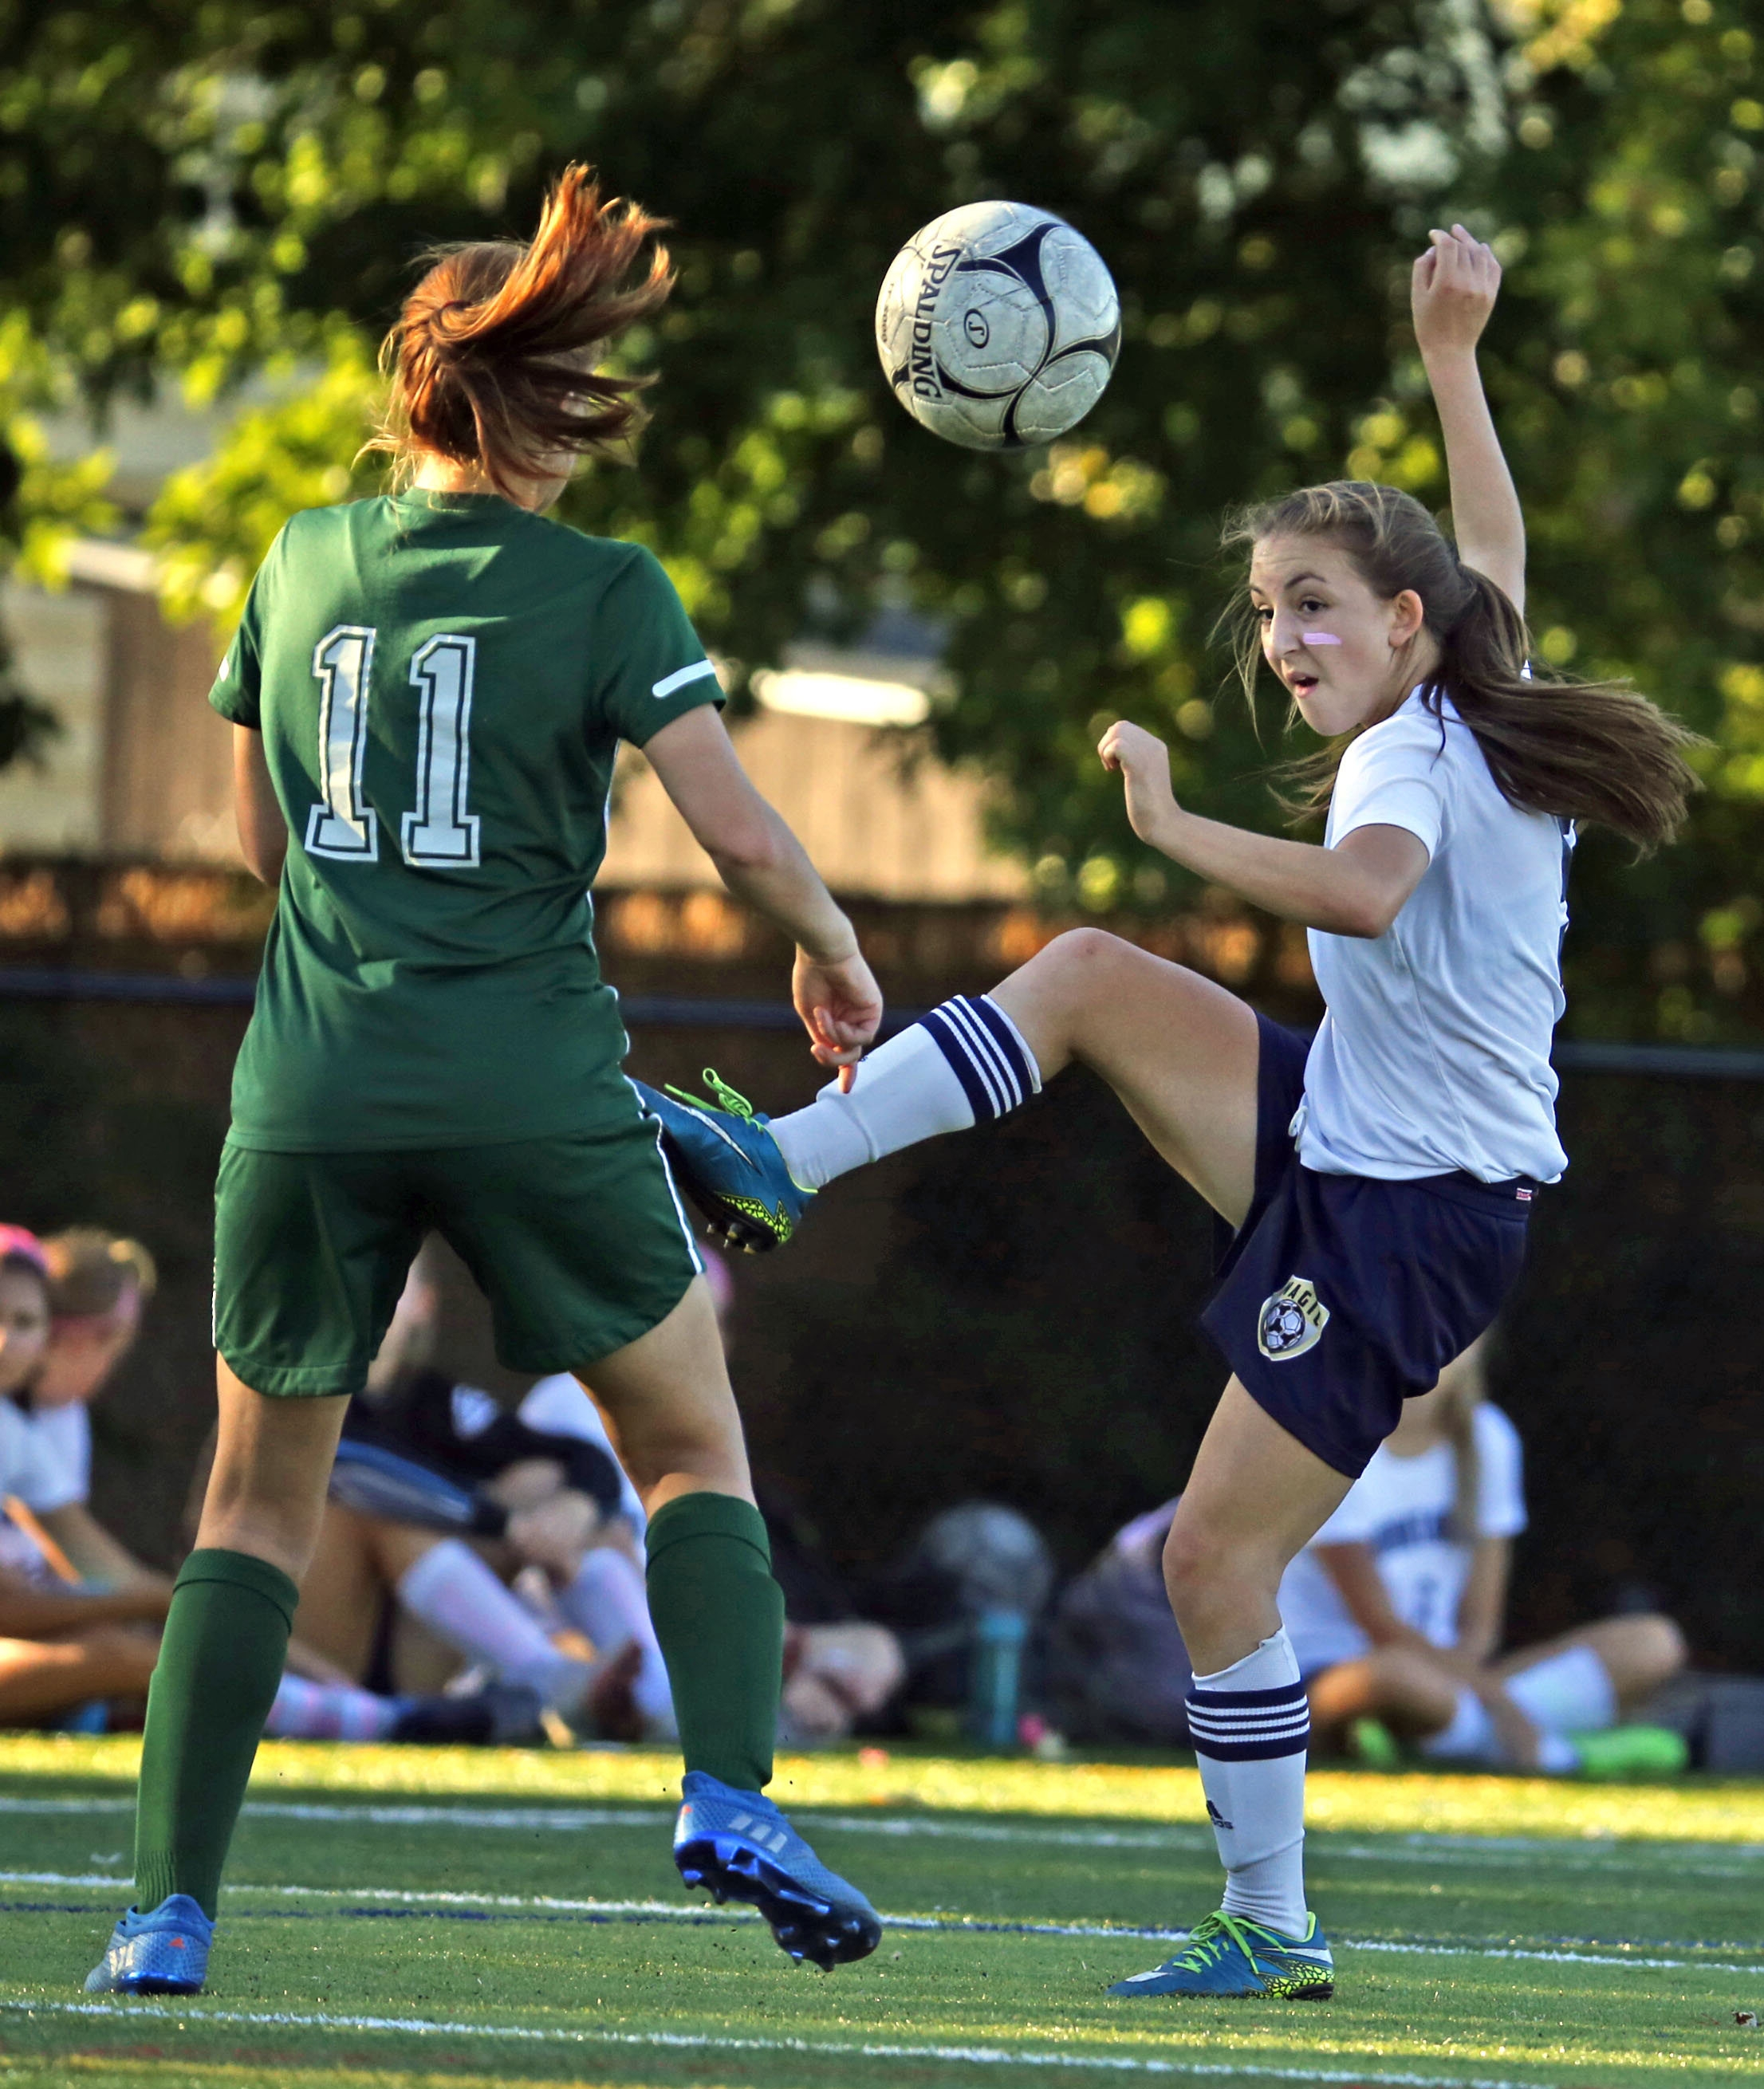 Mount Mercy's Mariah Rullan kicks a ball past Nichols Eliza Roach during first half action at Mulroy park on Friday,Oct. 7, 2016.(Harry Scull Jr./Buffalo News)